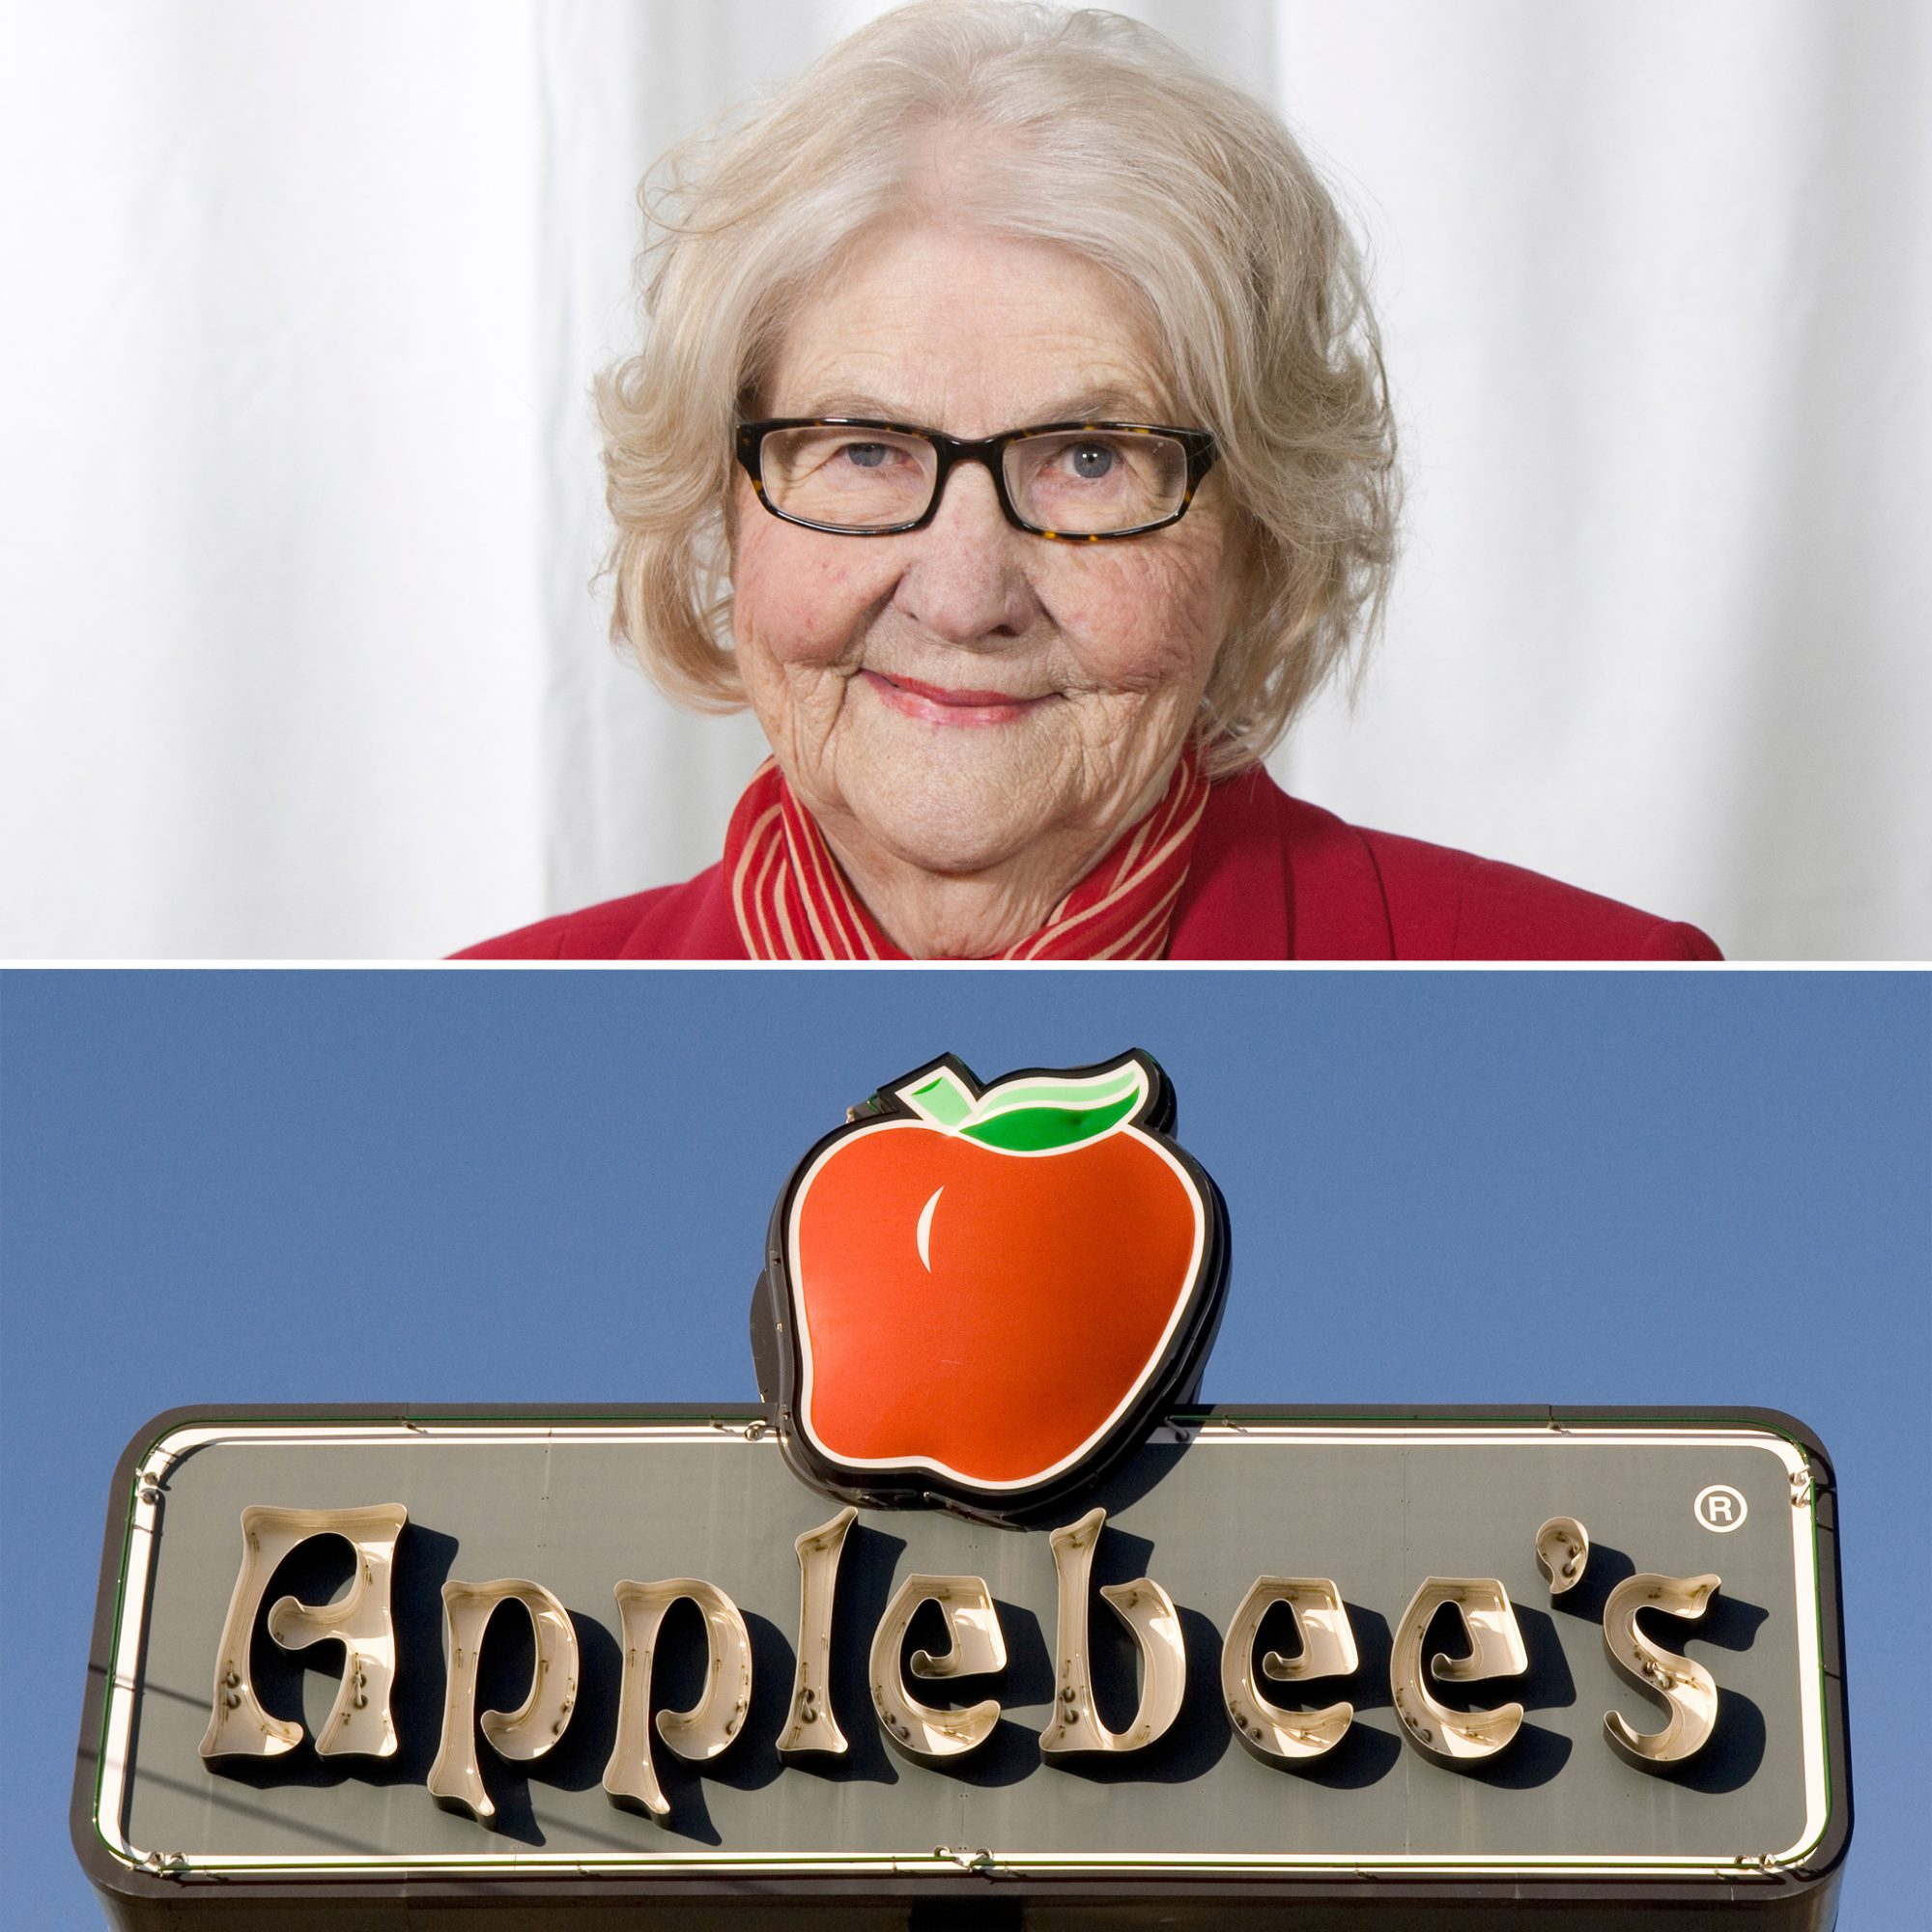 FWX MARILYN HAGERTY APPLEBEES